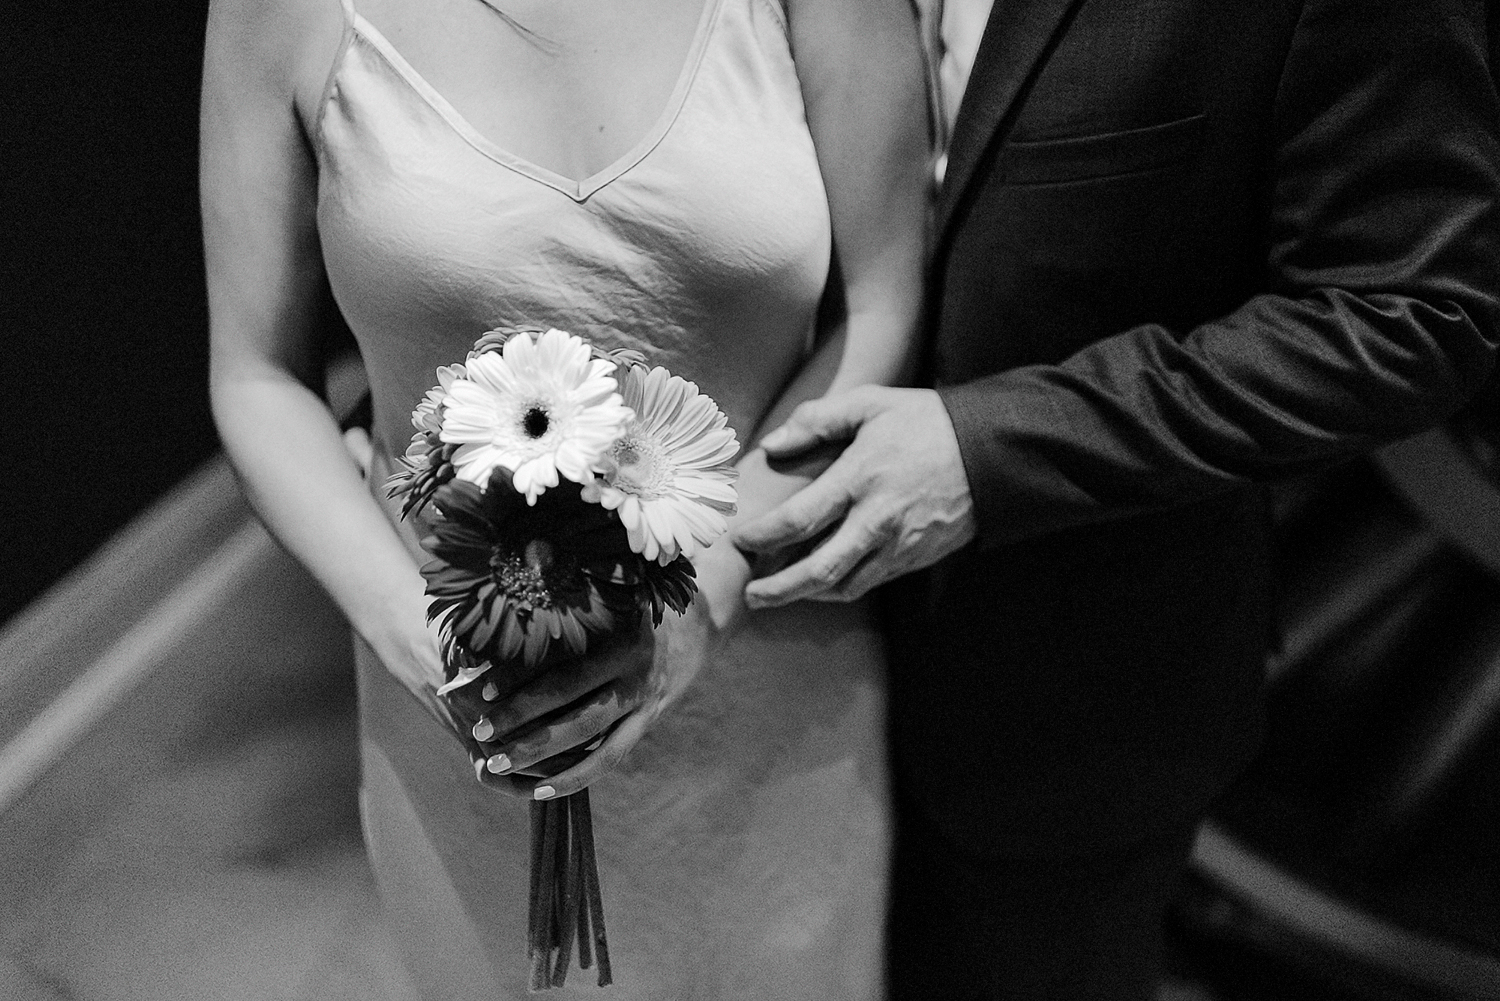 4-BEst-Wedding-Photographers-Toronto-One-King-West-Intimate-Wedding-Elopement-BW-Analog-Film-Portrait-candid-bank-vault_-Portraits-Editorial-candid-portraits-flower-bride-bouquet.jpg